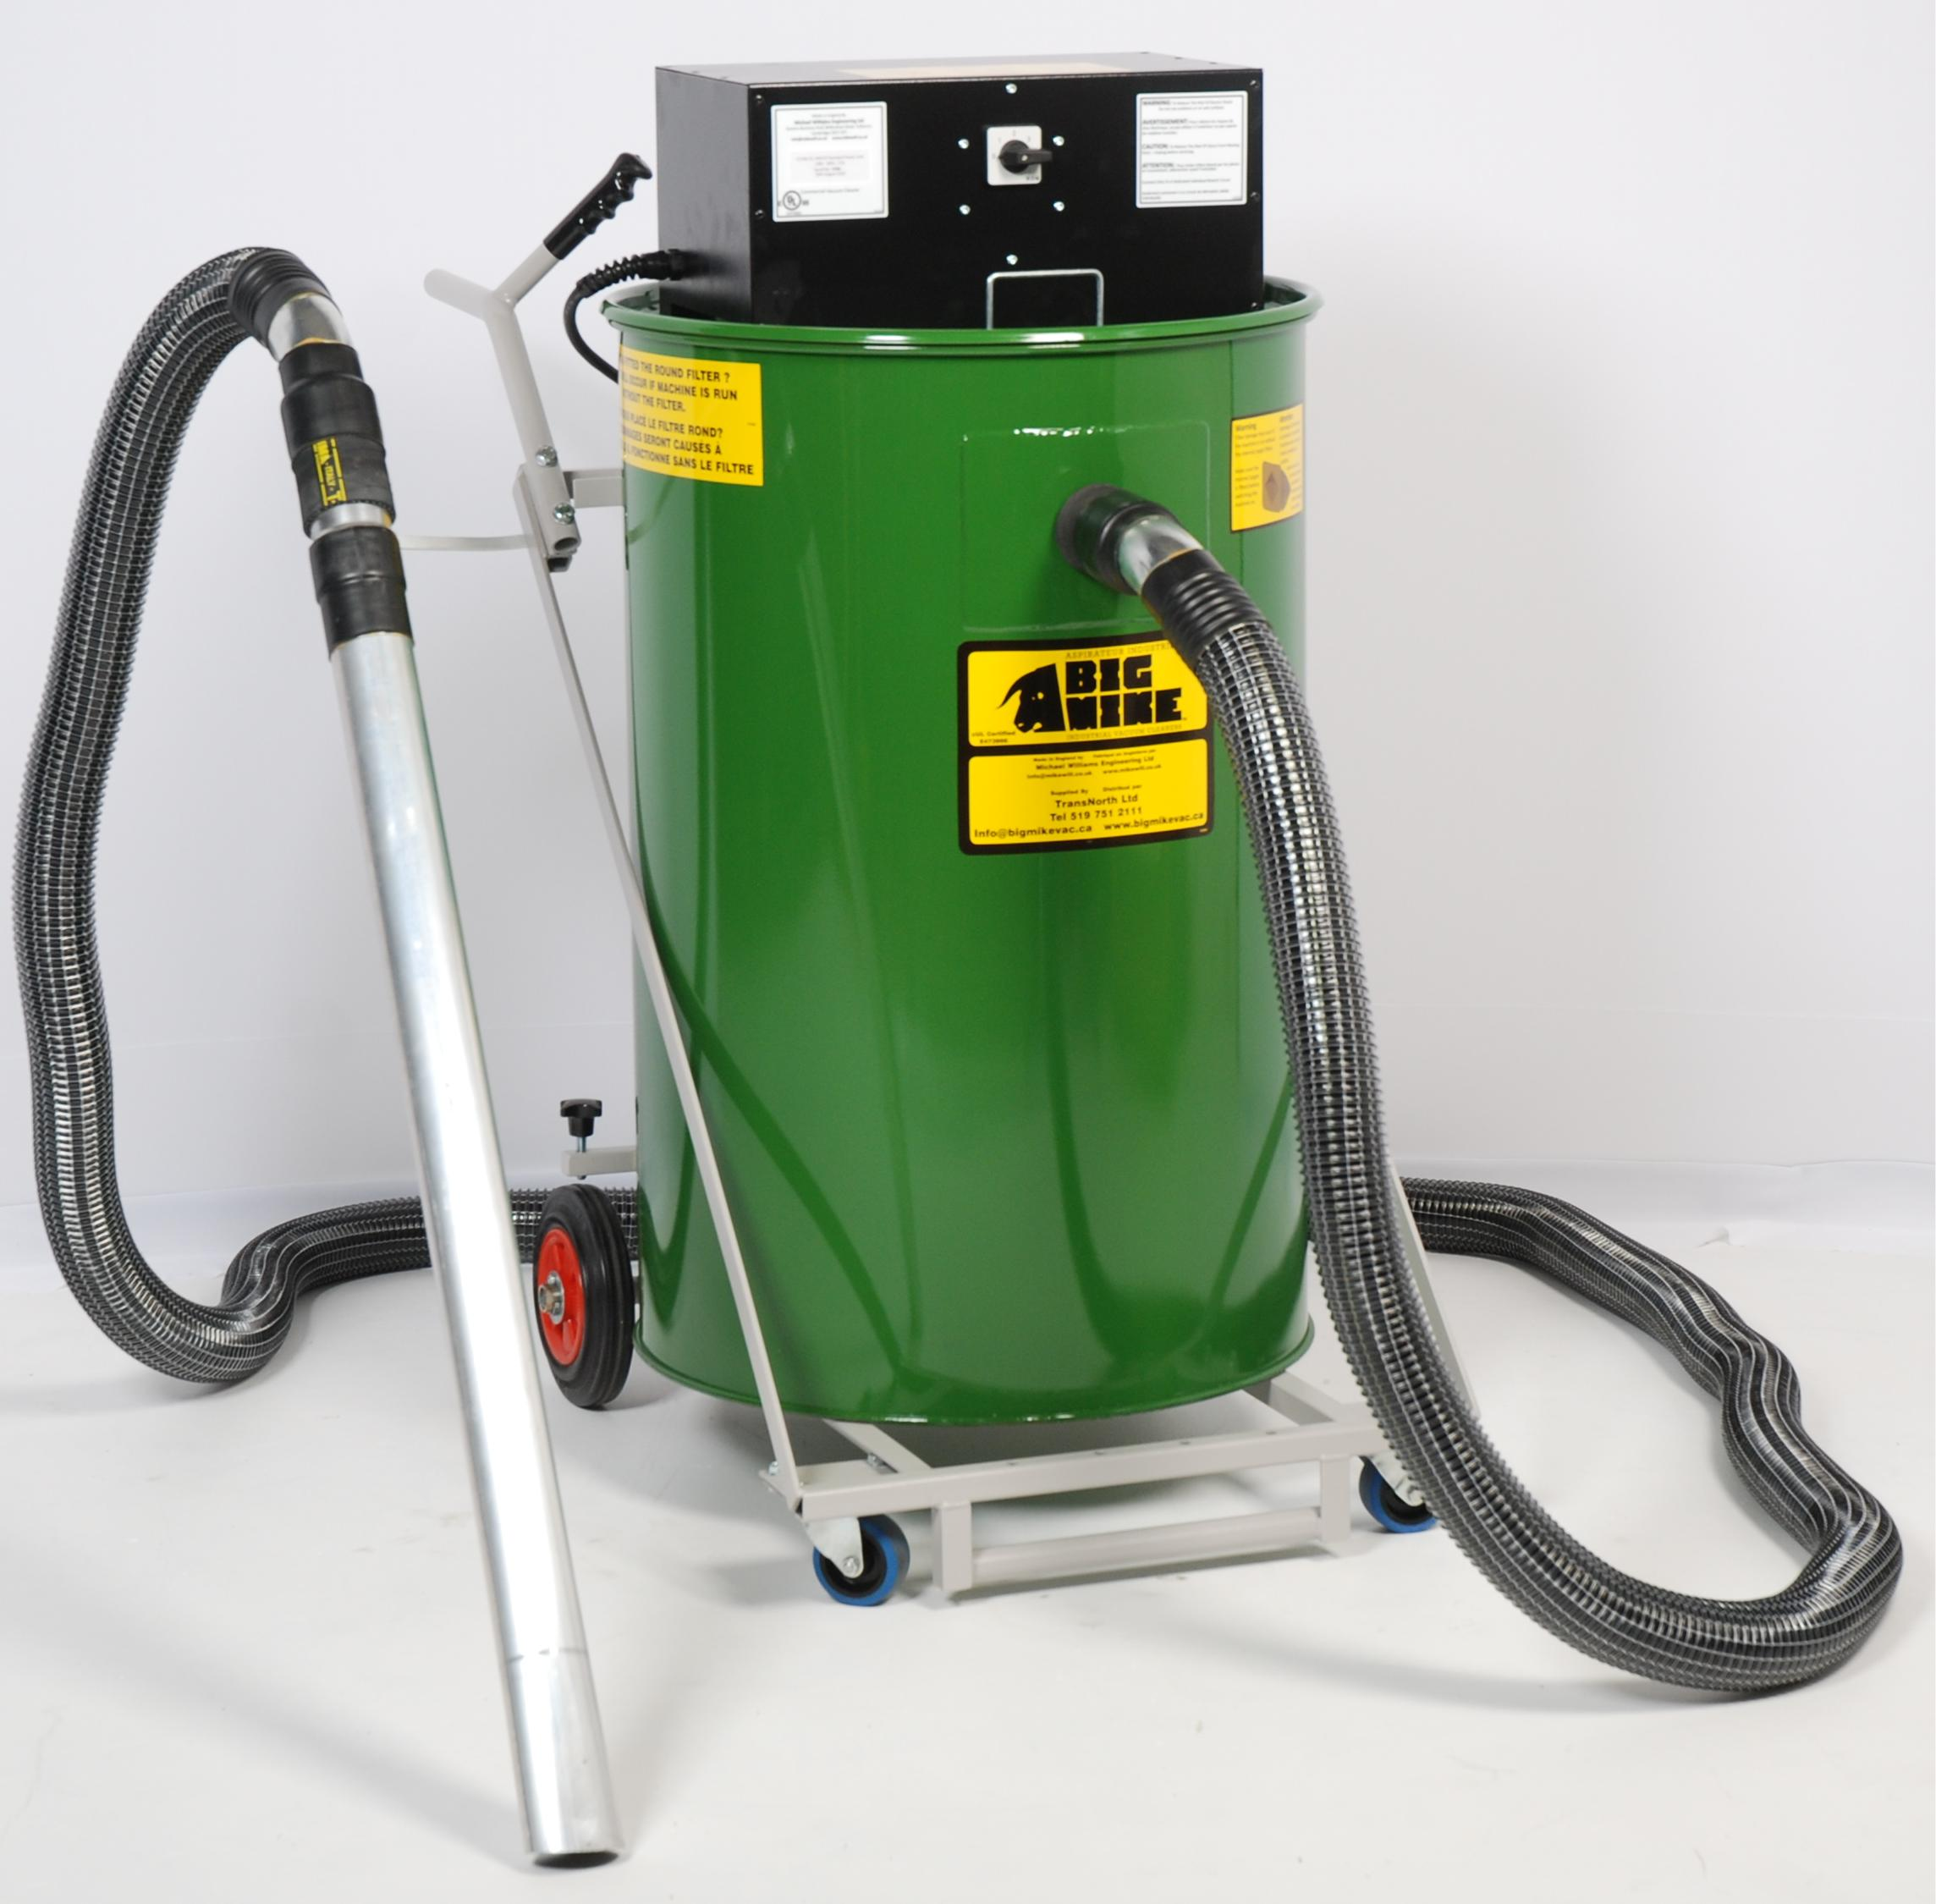 Big Mike Dry-Only Popular Industrial Vacuum Right View